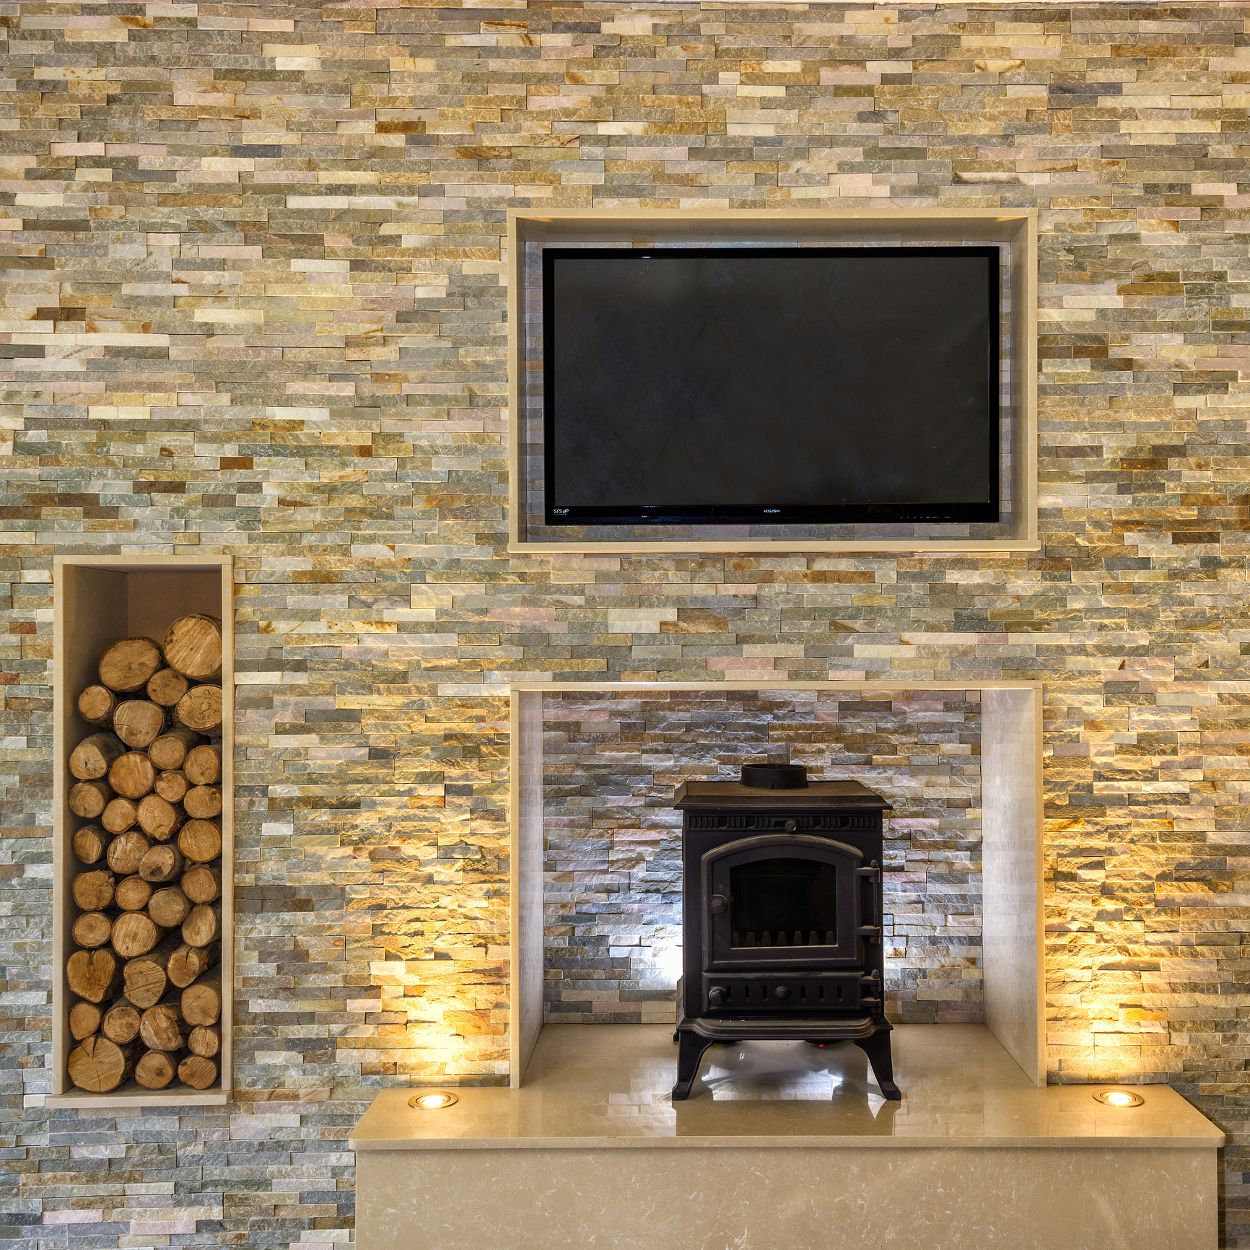 Modern-Fireplace-with-Stove-Ireland